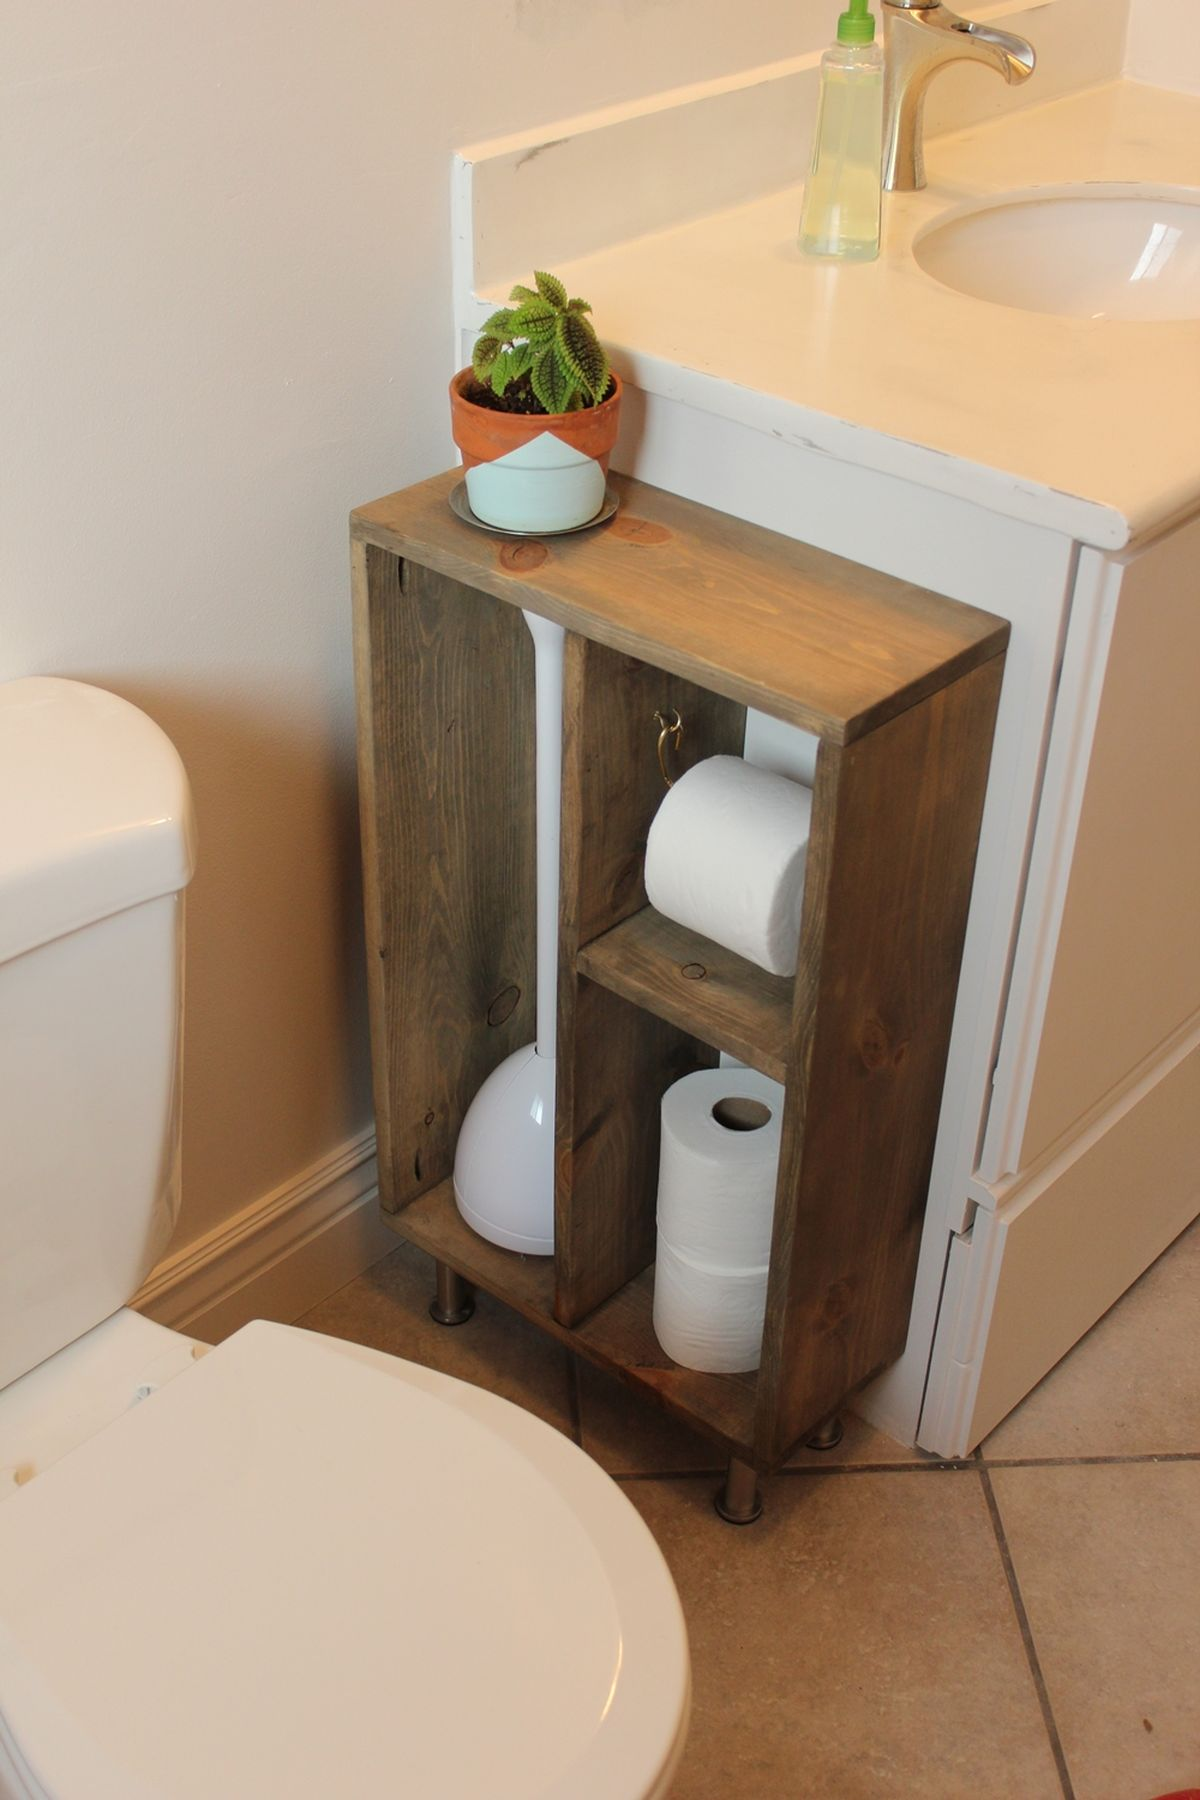 Wood storage for bathroom paper